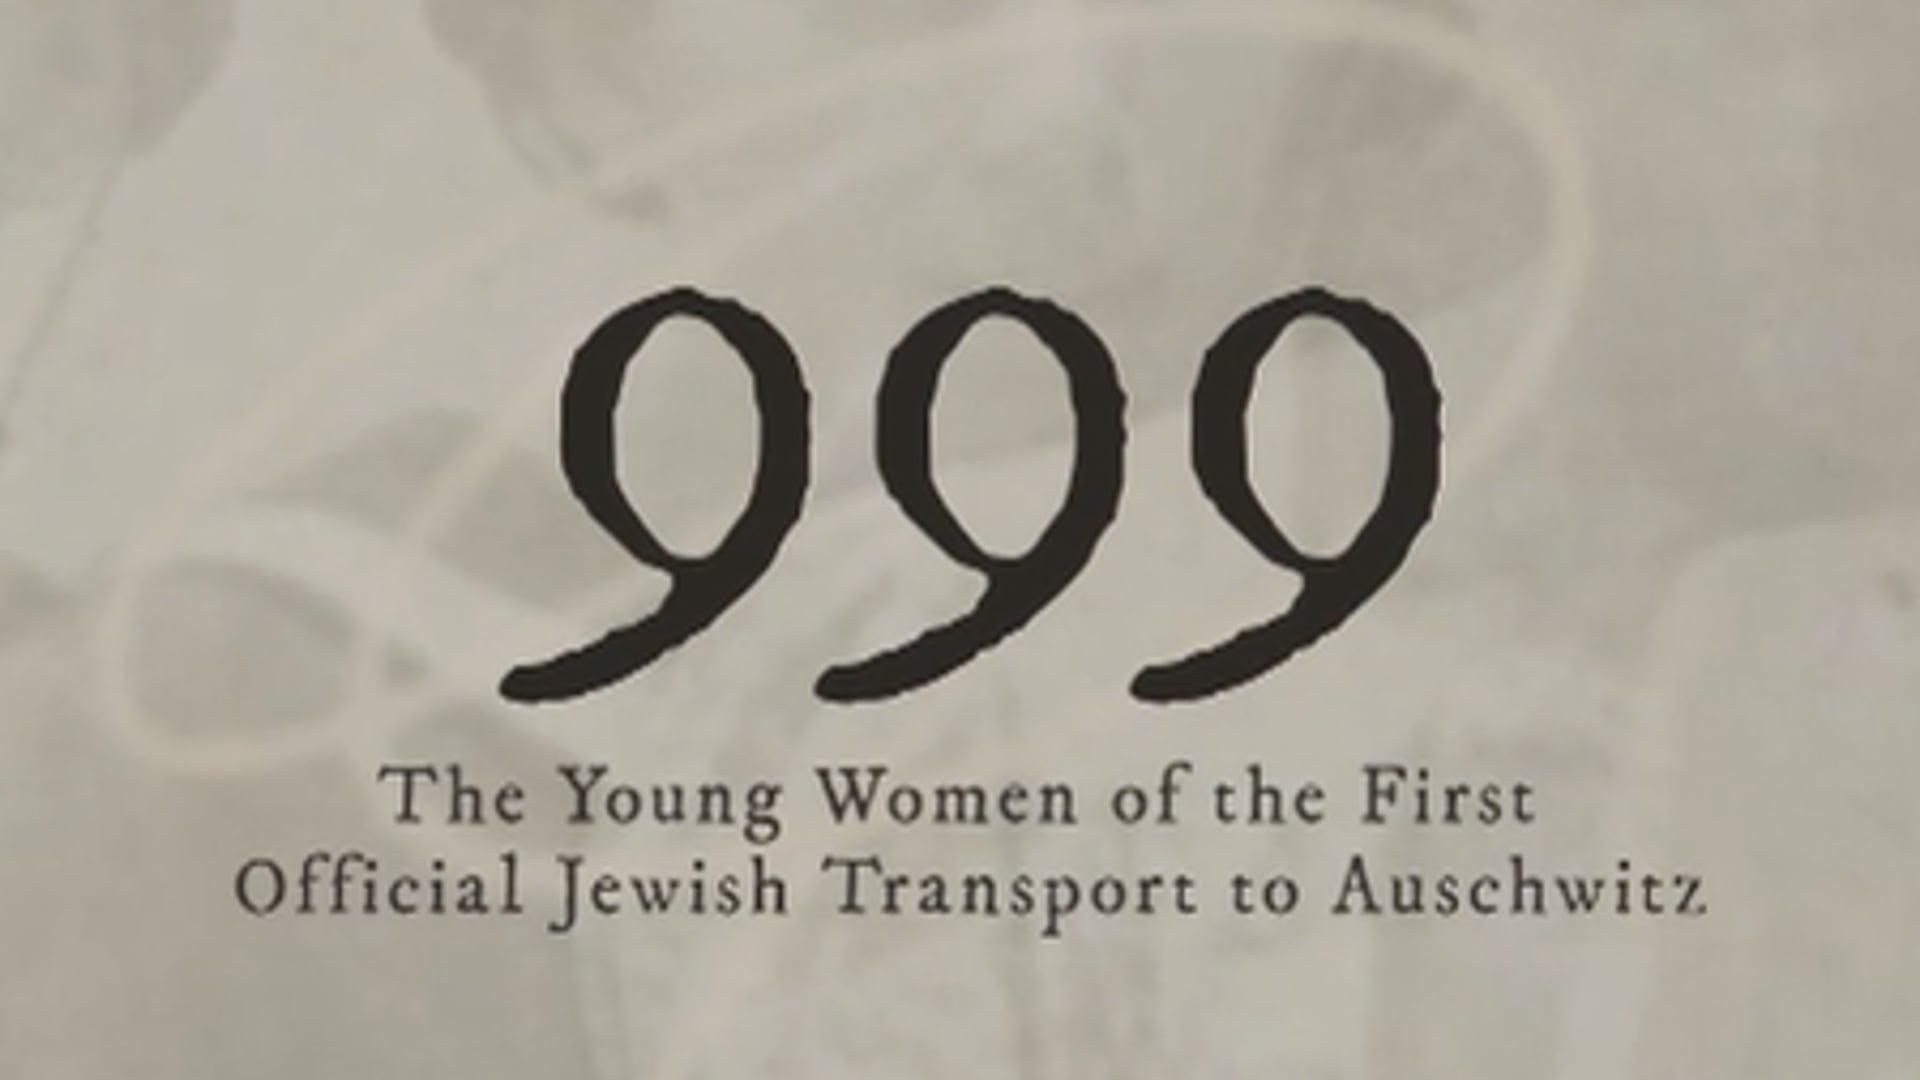 Trailer for 999 - The Young Women of the First Jewish Transport to Auschwitz